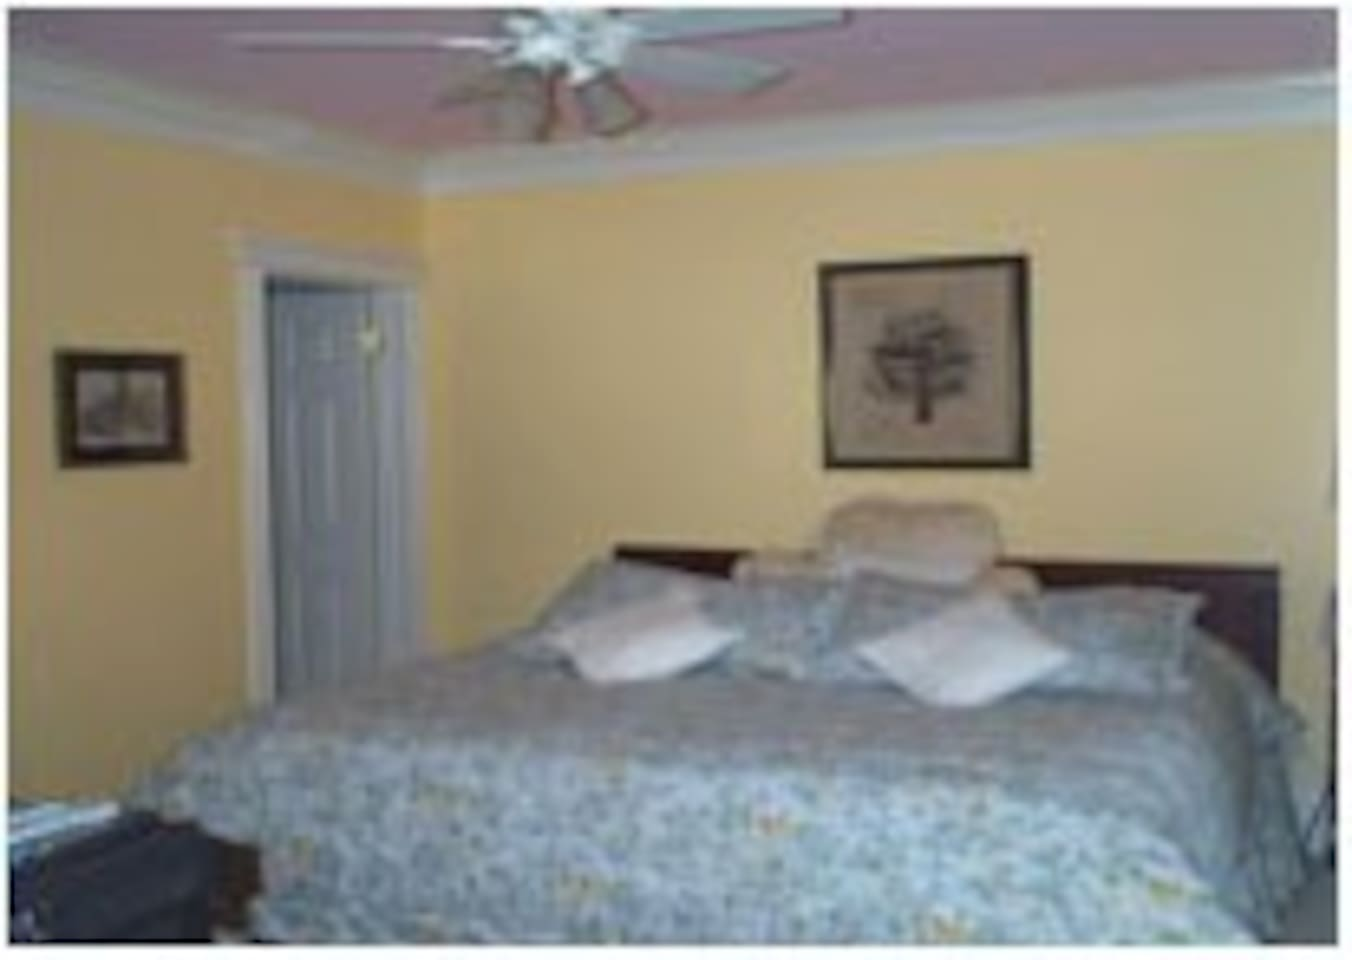 1 of 2 bedrooms (Queen and King, King may also be made into 2 twins)